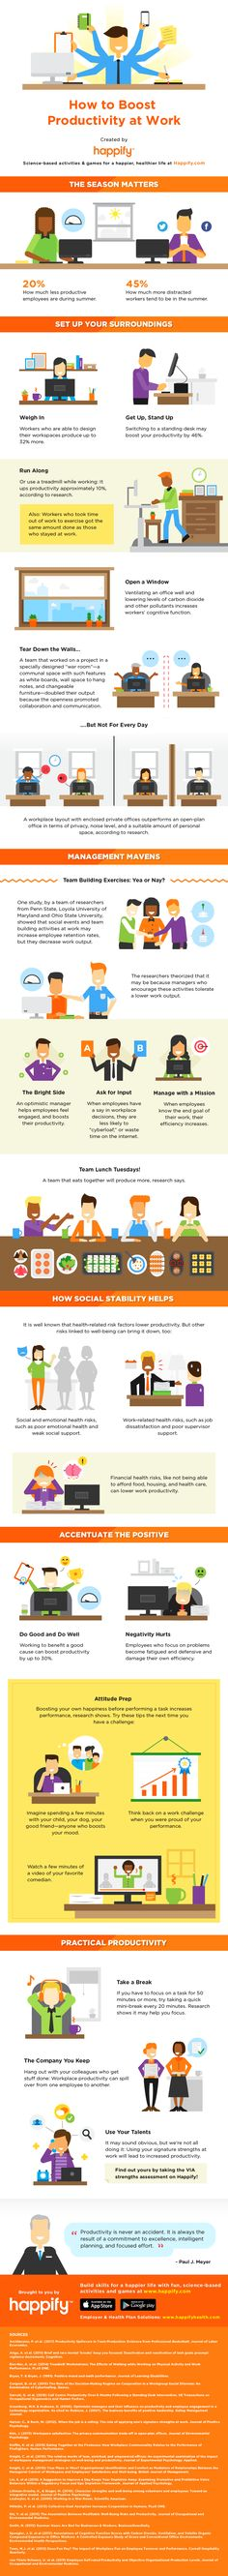 INFOGRAPHIC: 16 Secrets to Greater Productivity - Happify Daily